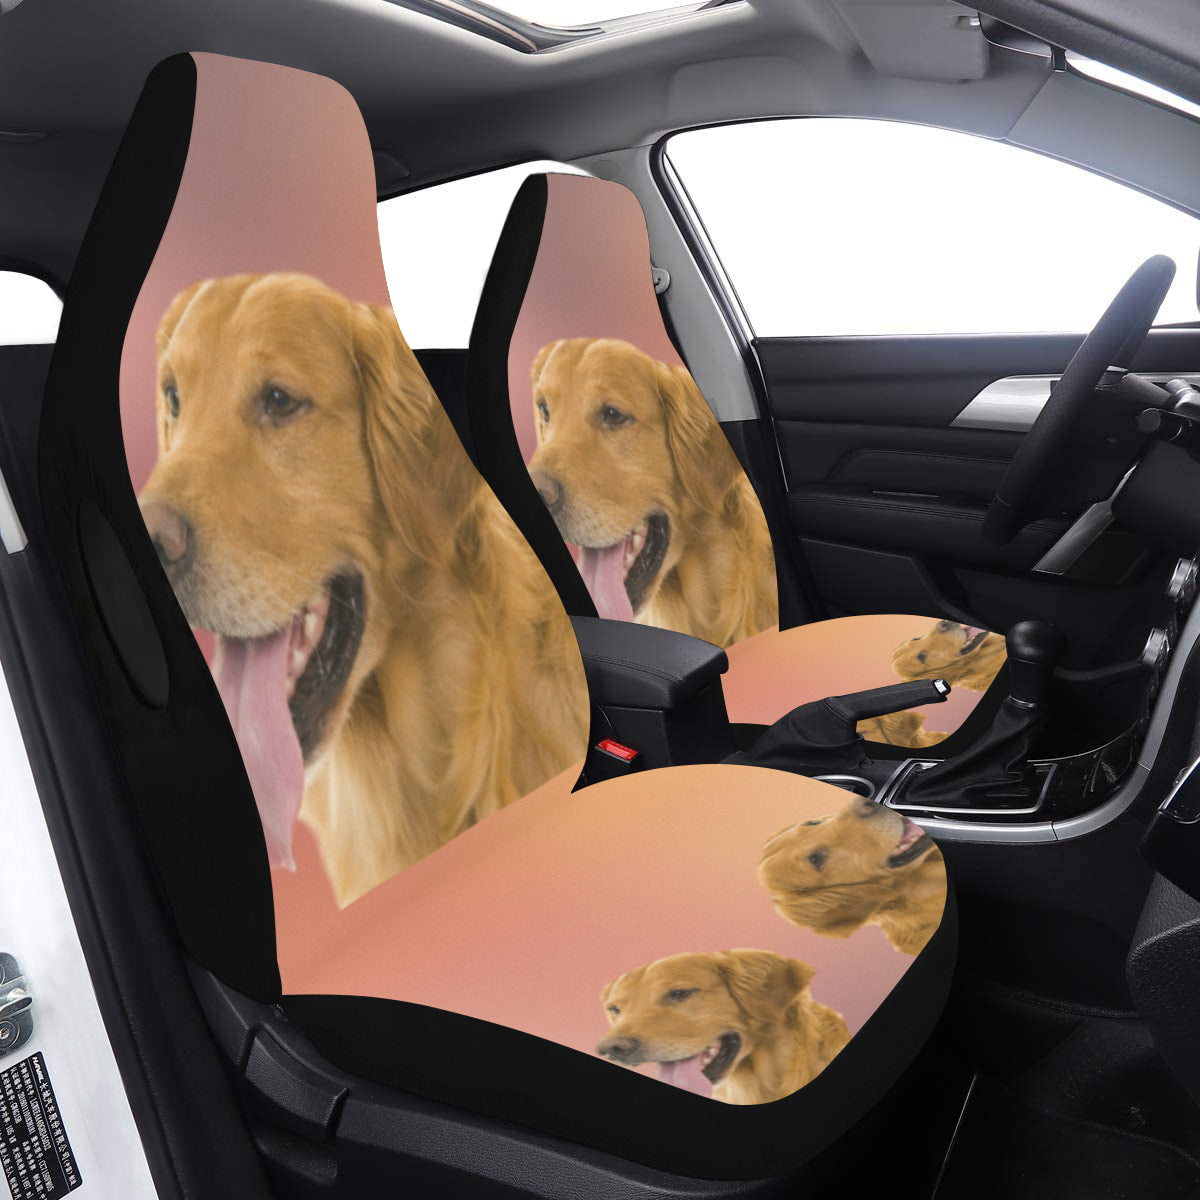 Golden Retriever Car Seat Covers (Set of 2) - Airbag Compatible